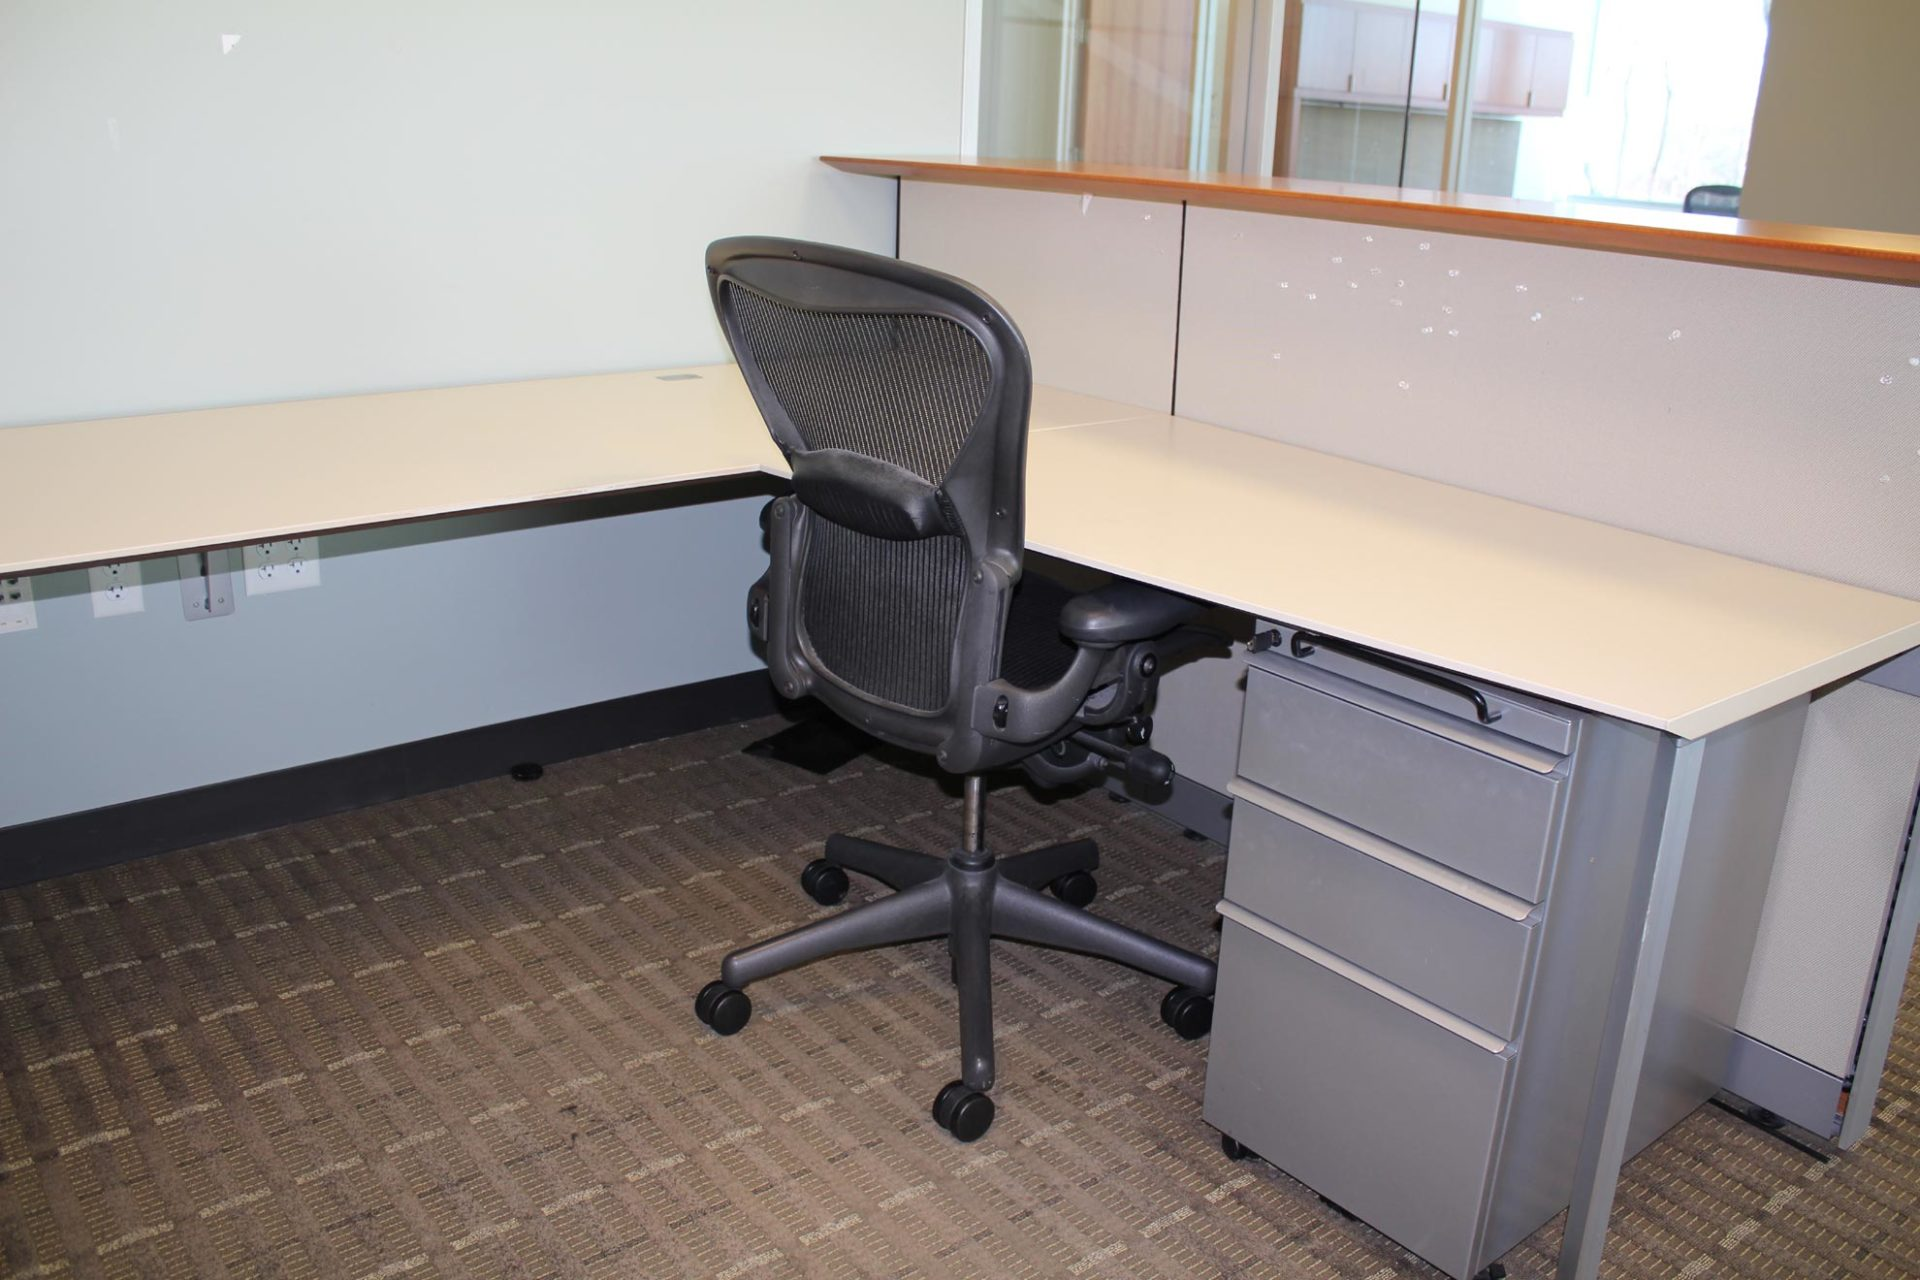 peartreeofficefurniture_peartreeofficefurniture_r216a.jpg